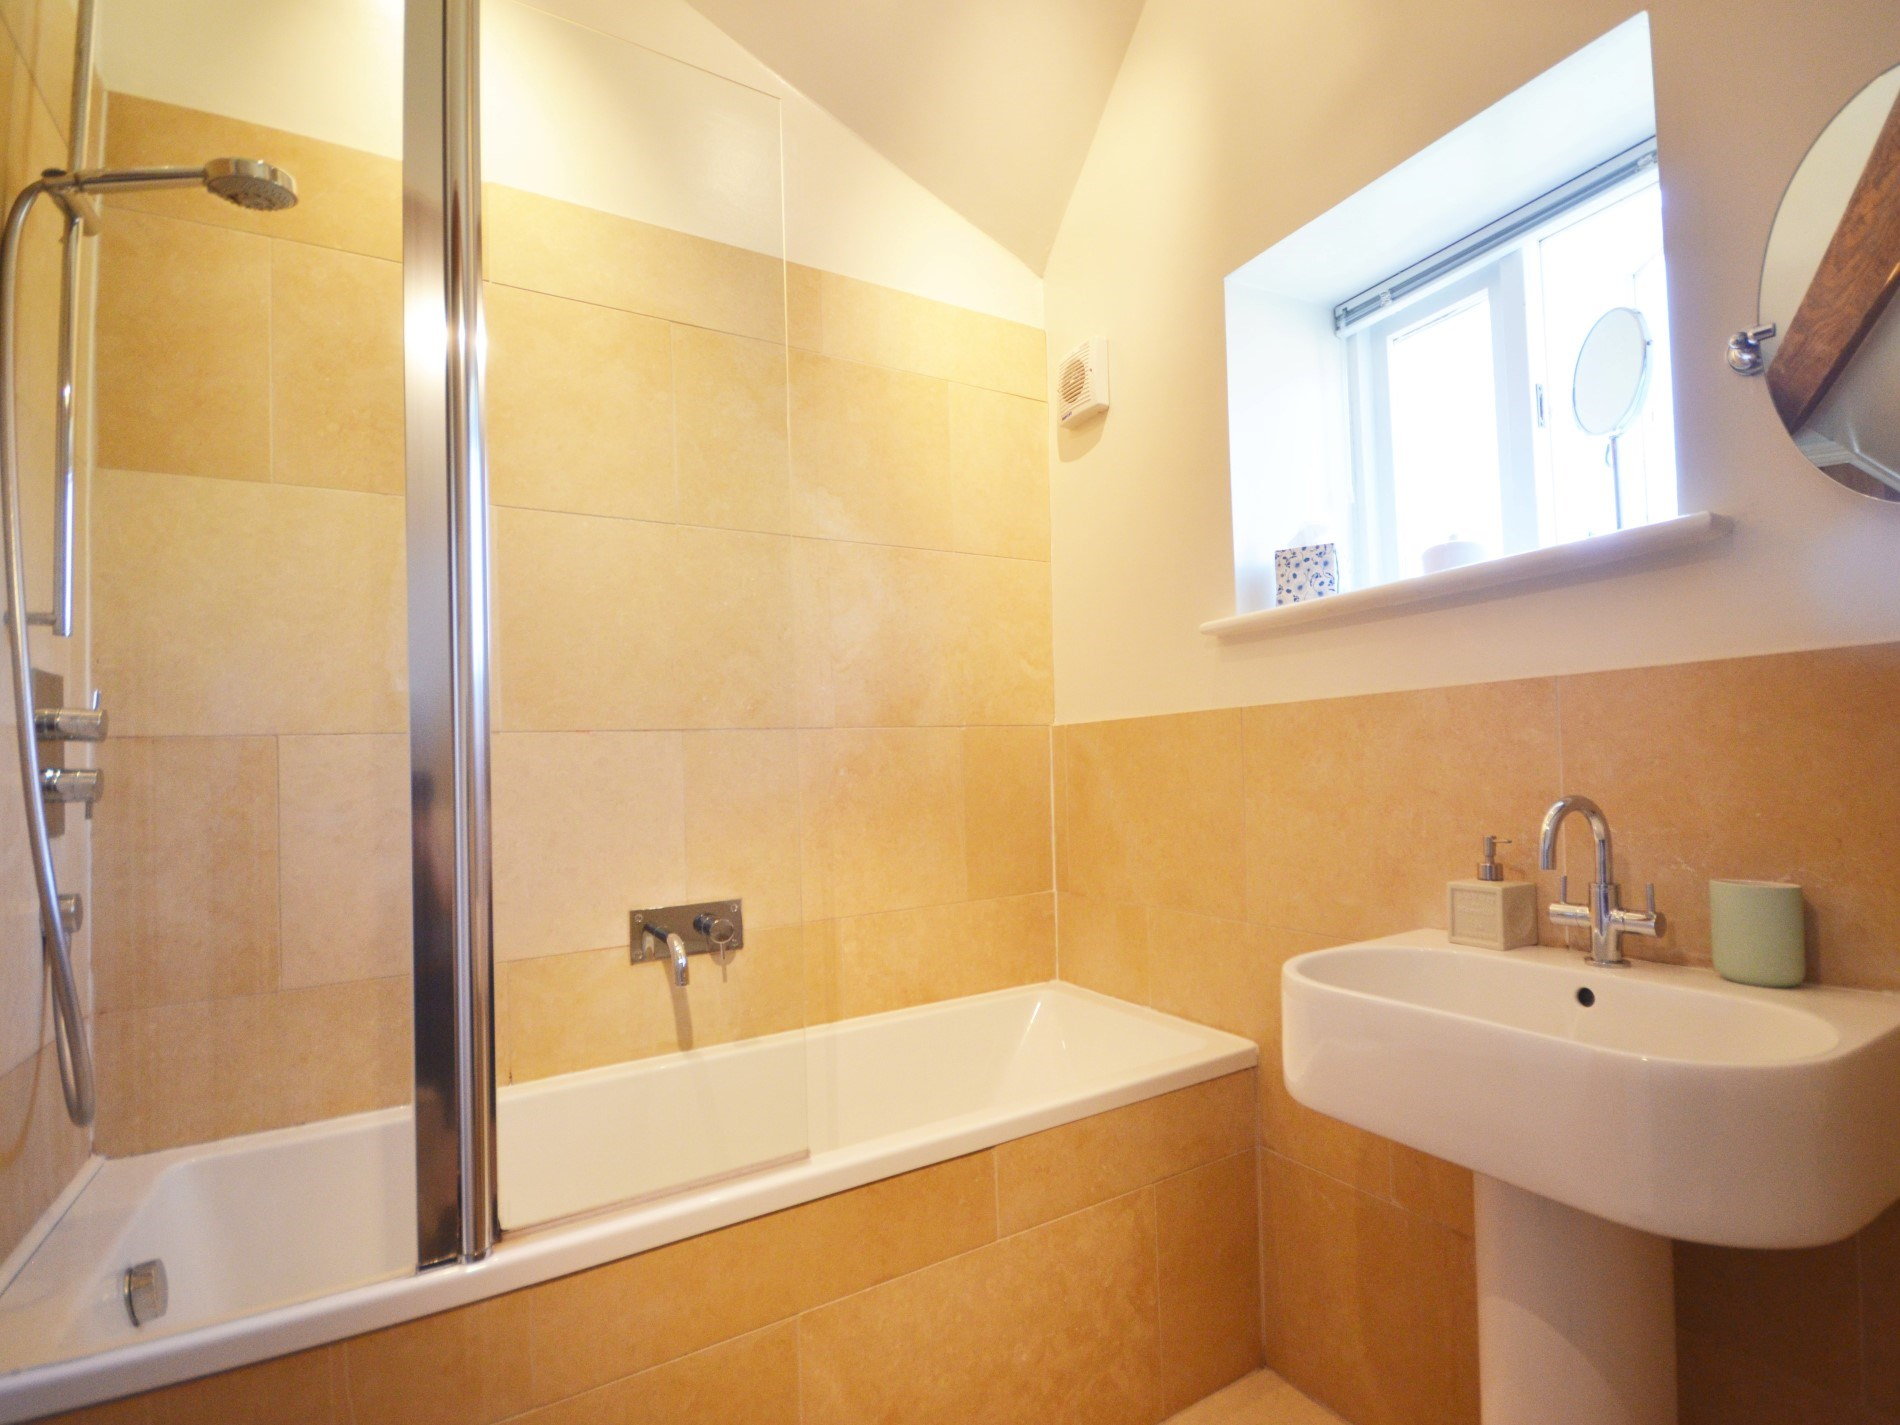 Ensuite bathroom with shower over